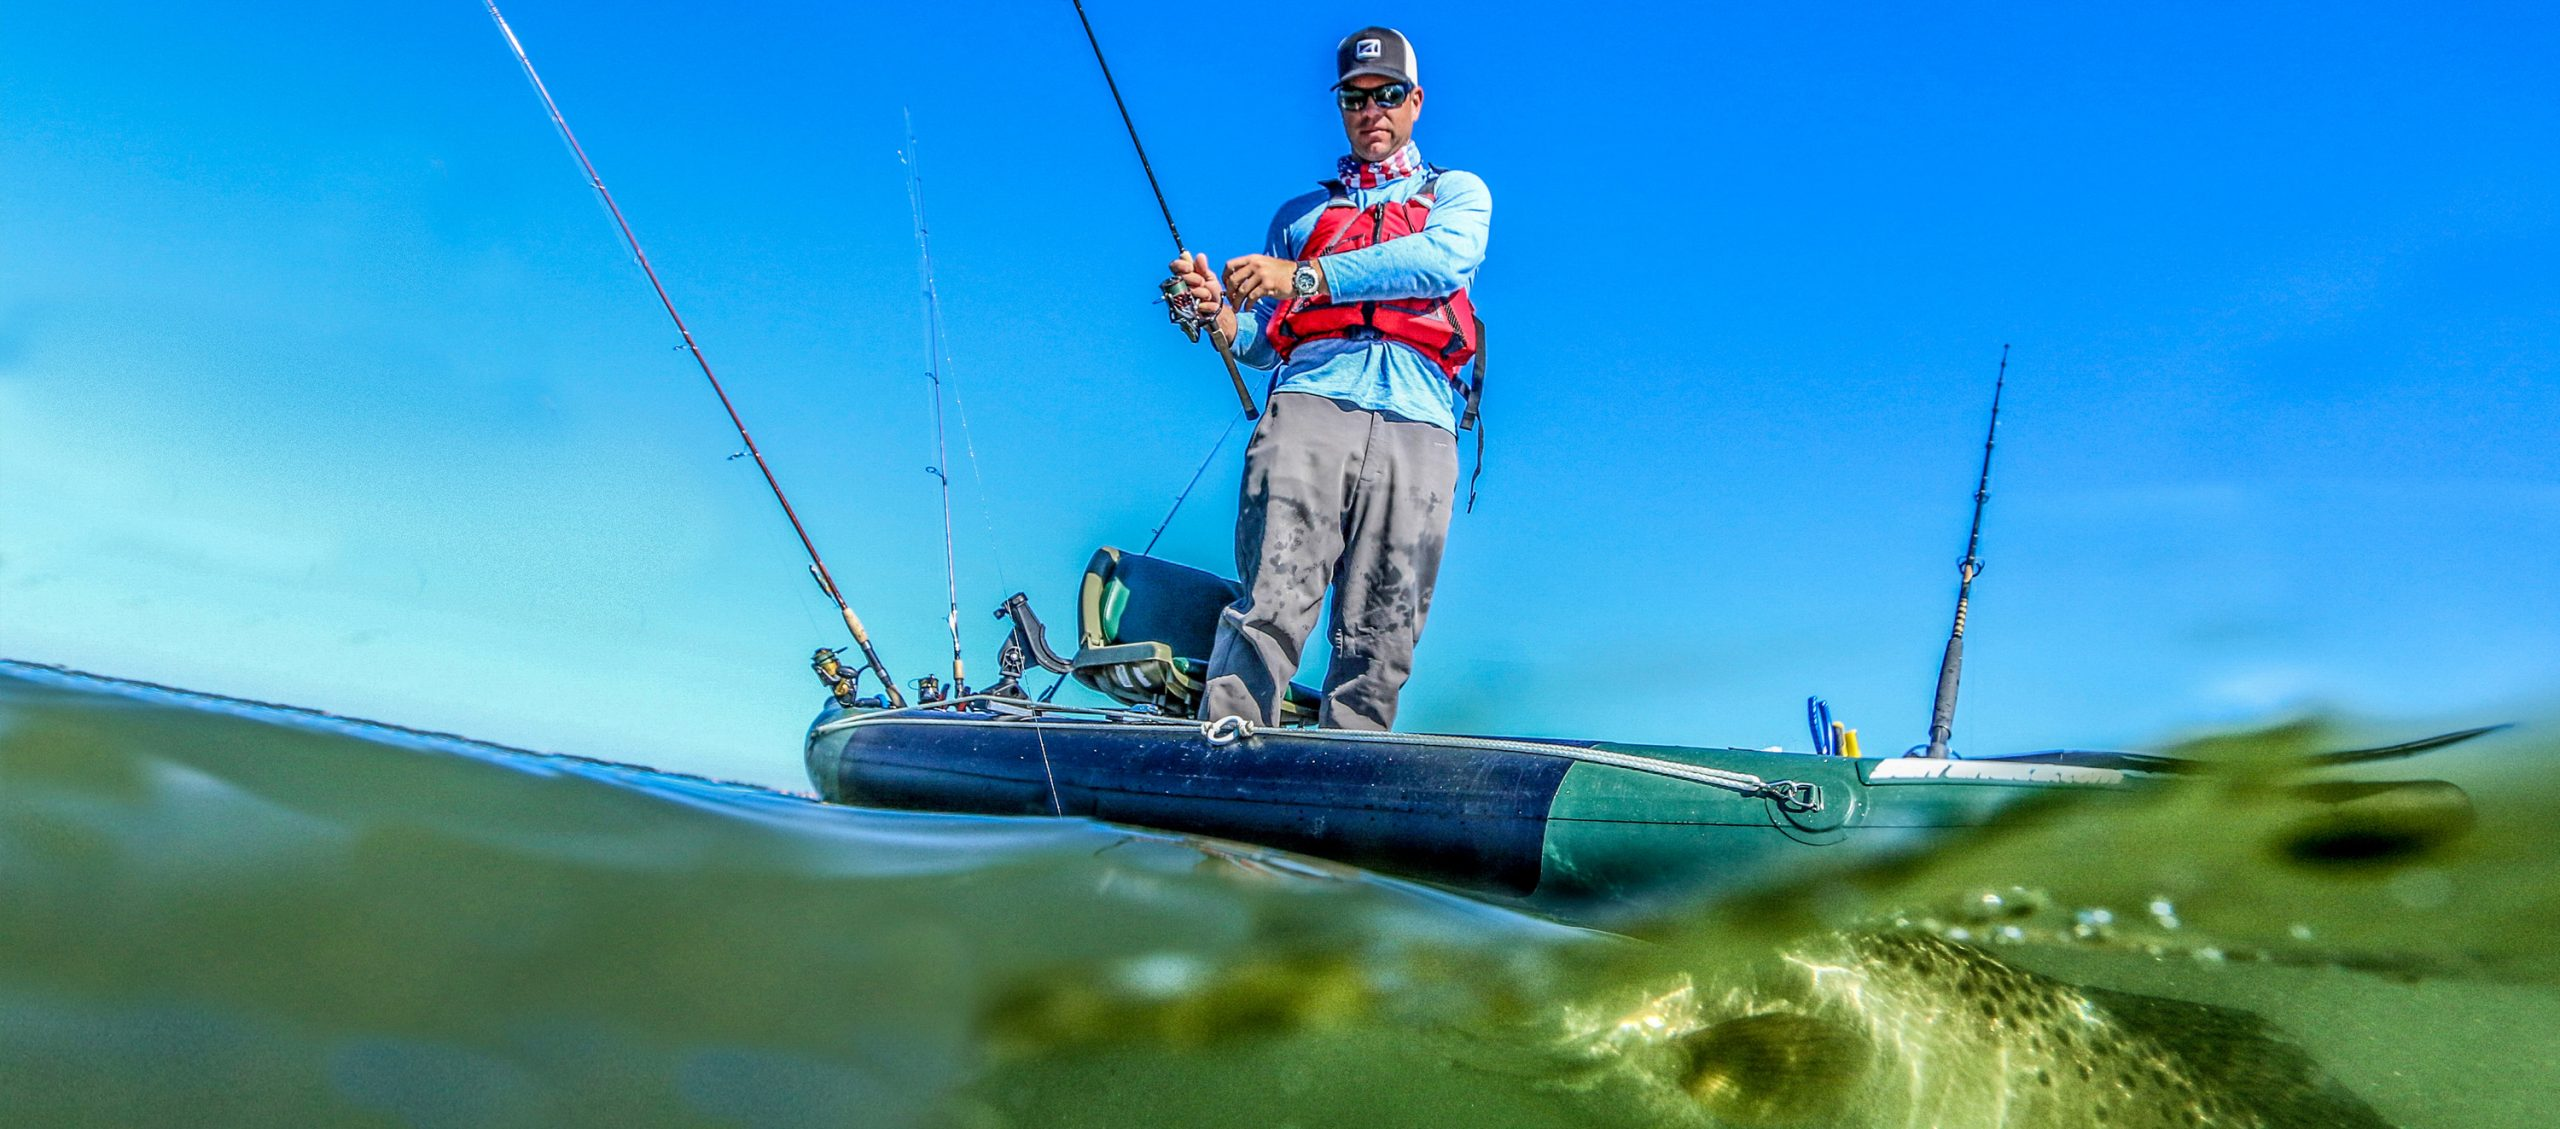 Man standing up on fishing kayak with fish just below the surface